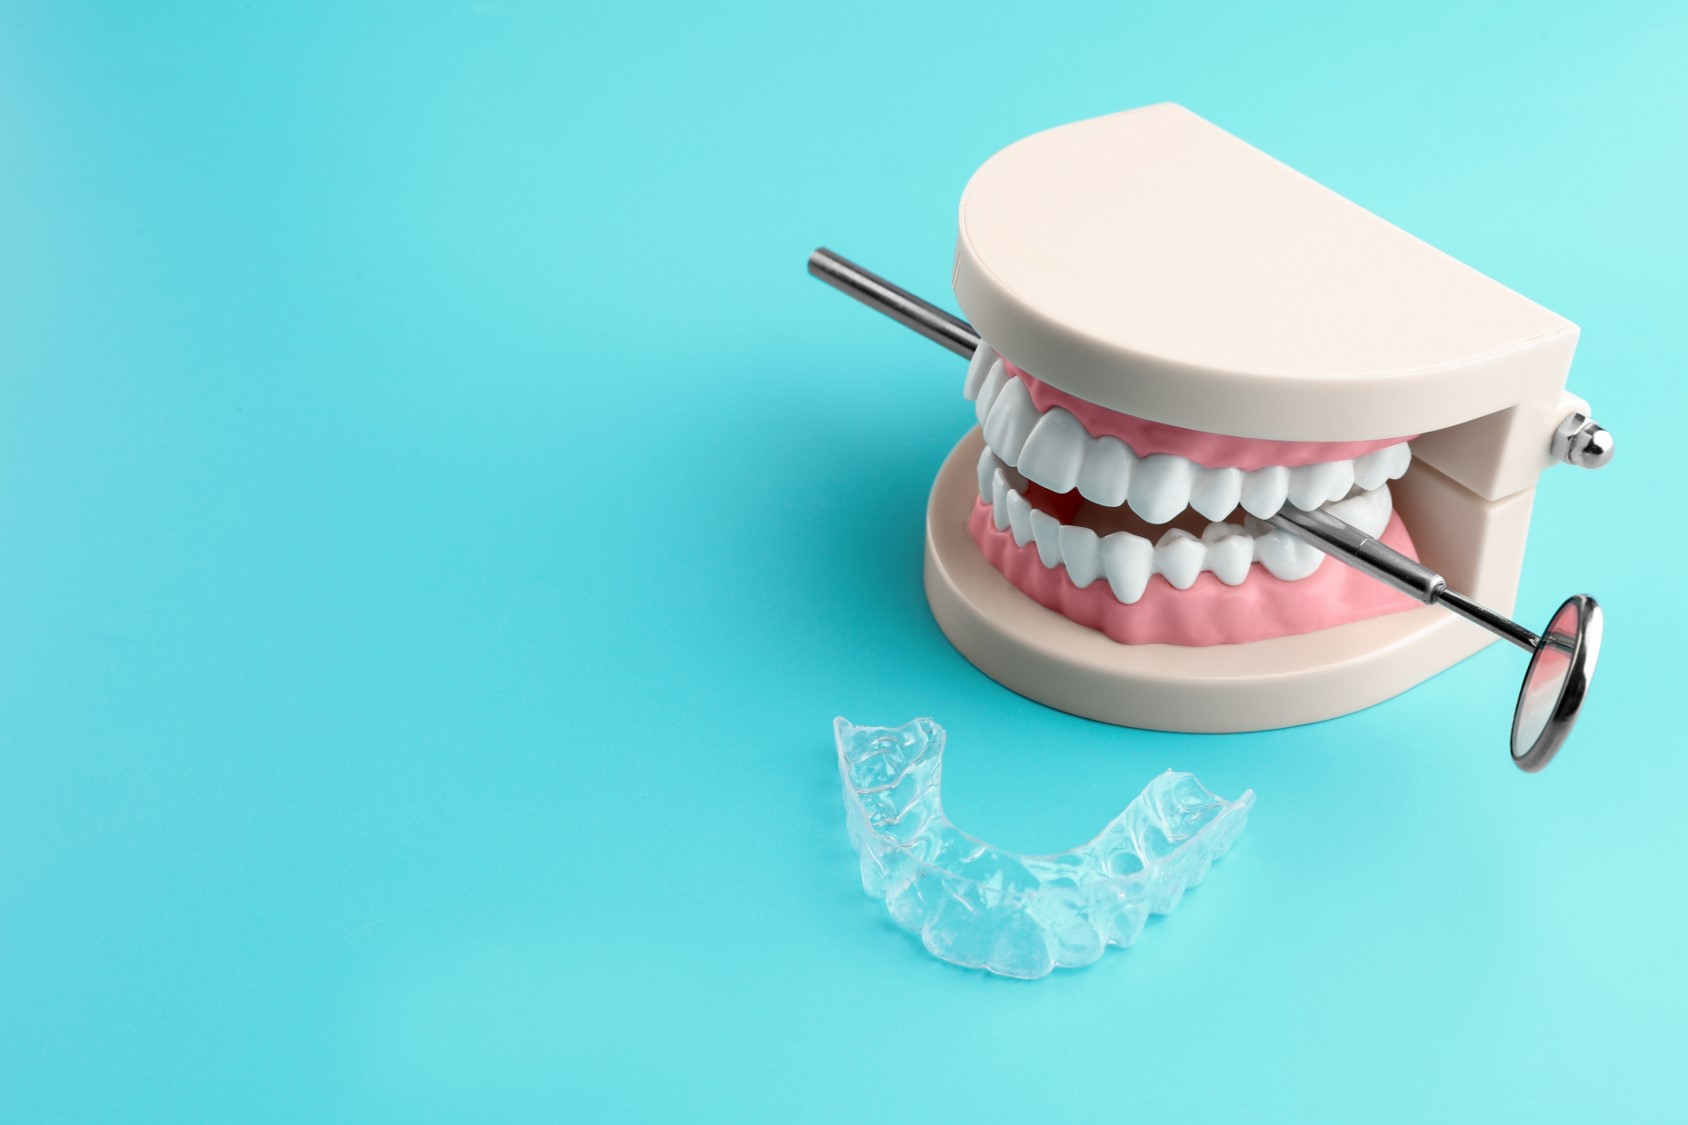 Bruxism treatment therapy